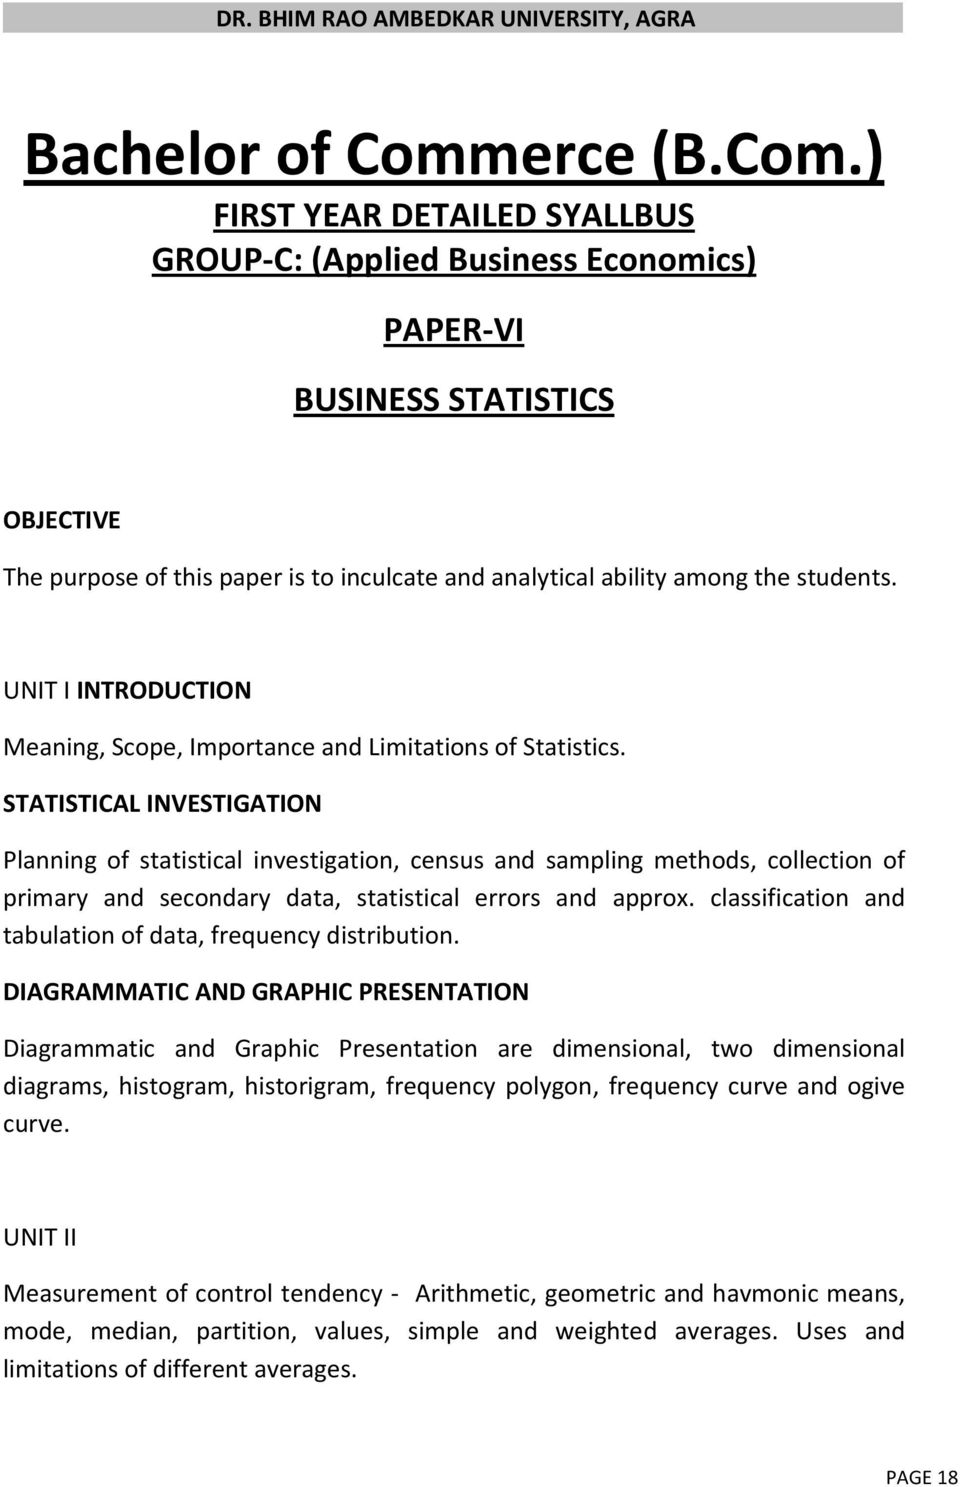 BACHELOR OF COMMERCE (B Com ) - PDF